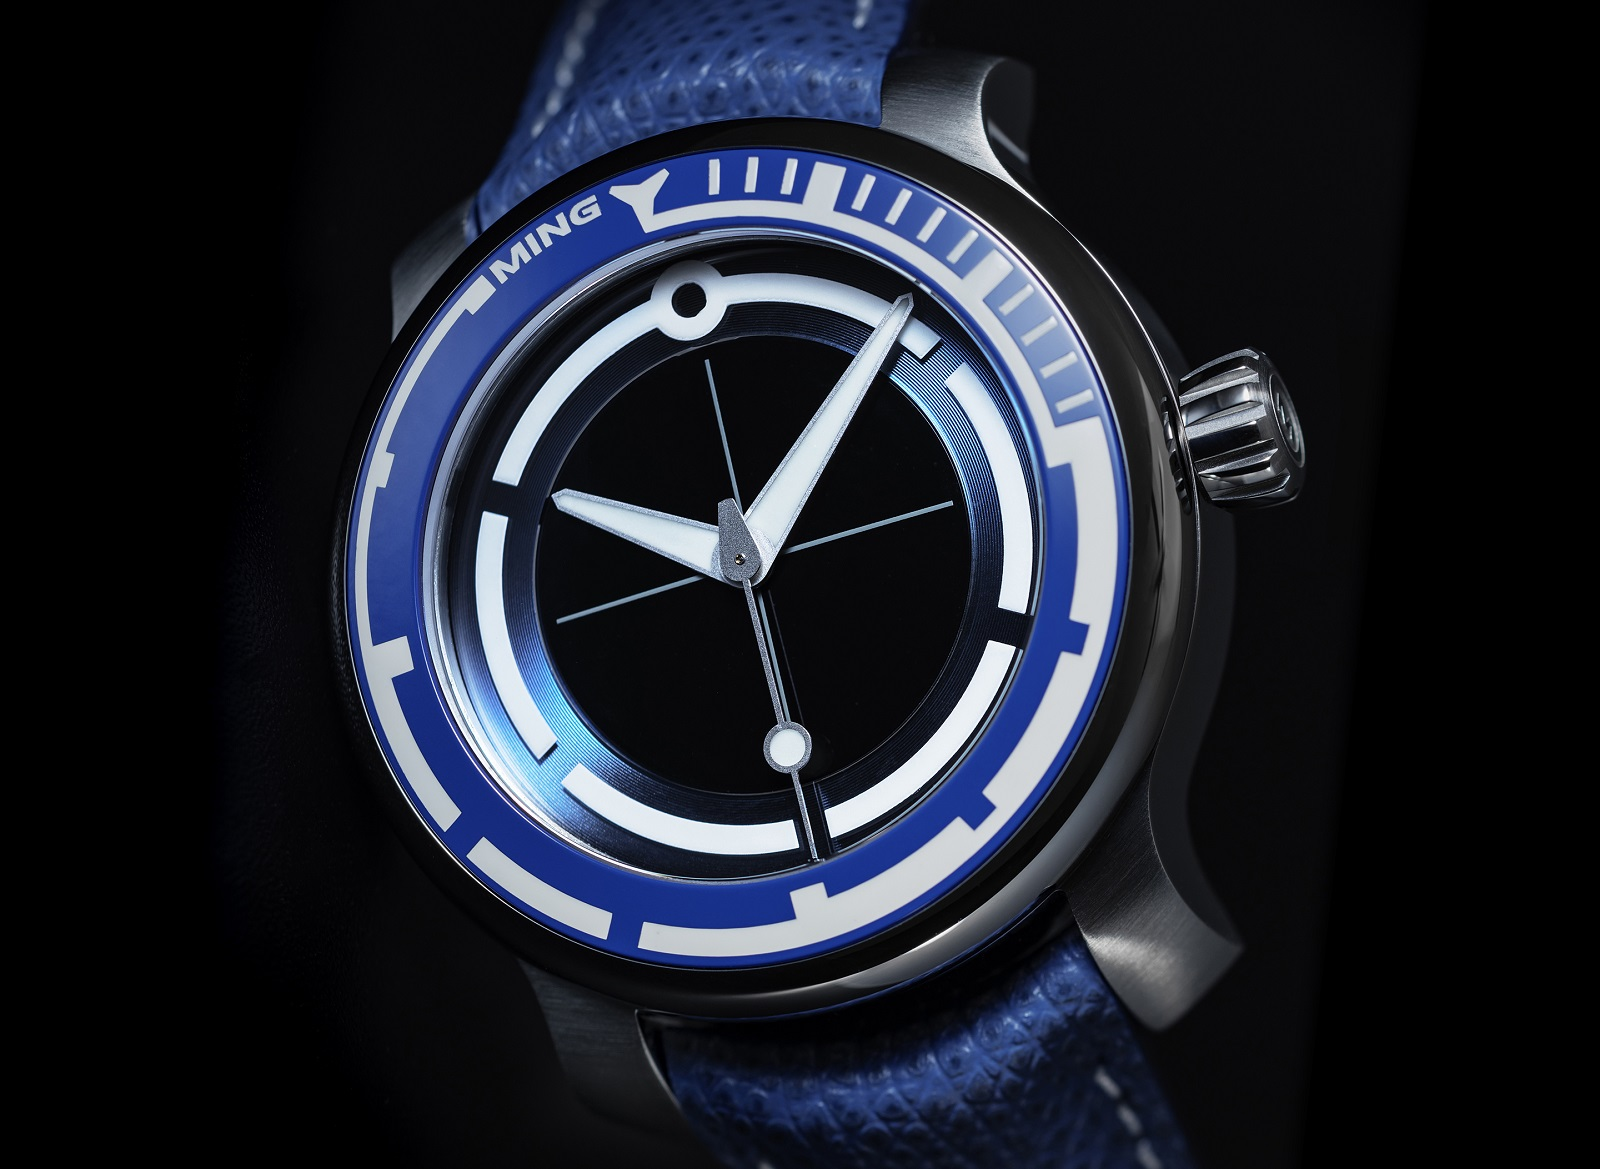 MING 18.01 Abyss Concept dial